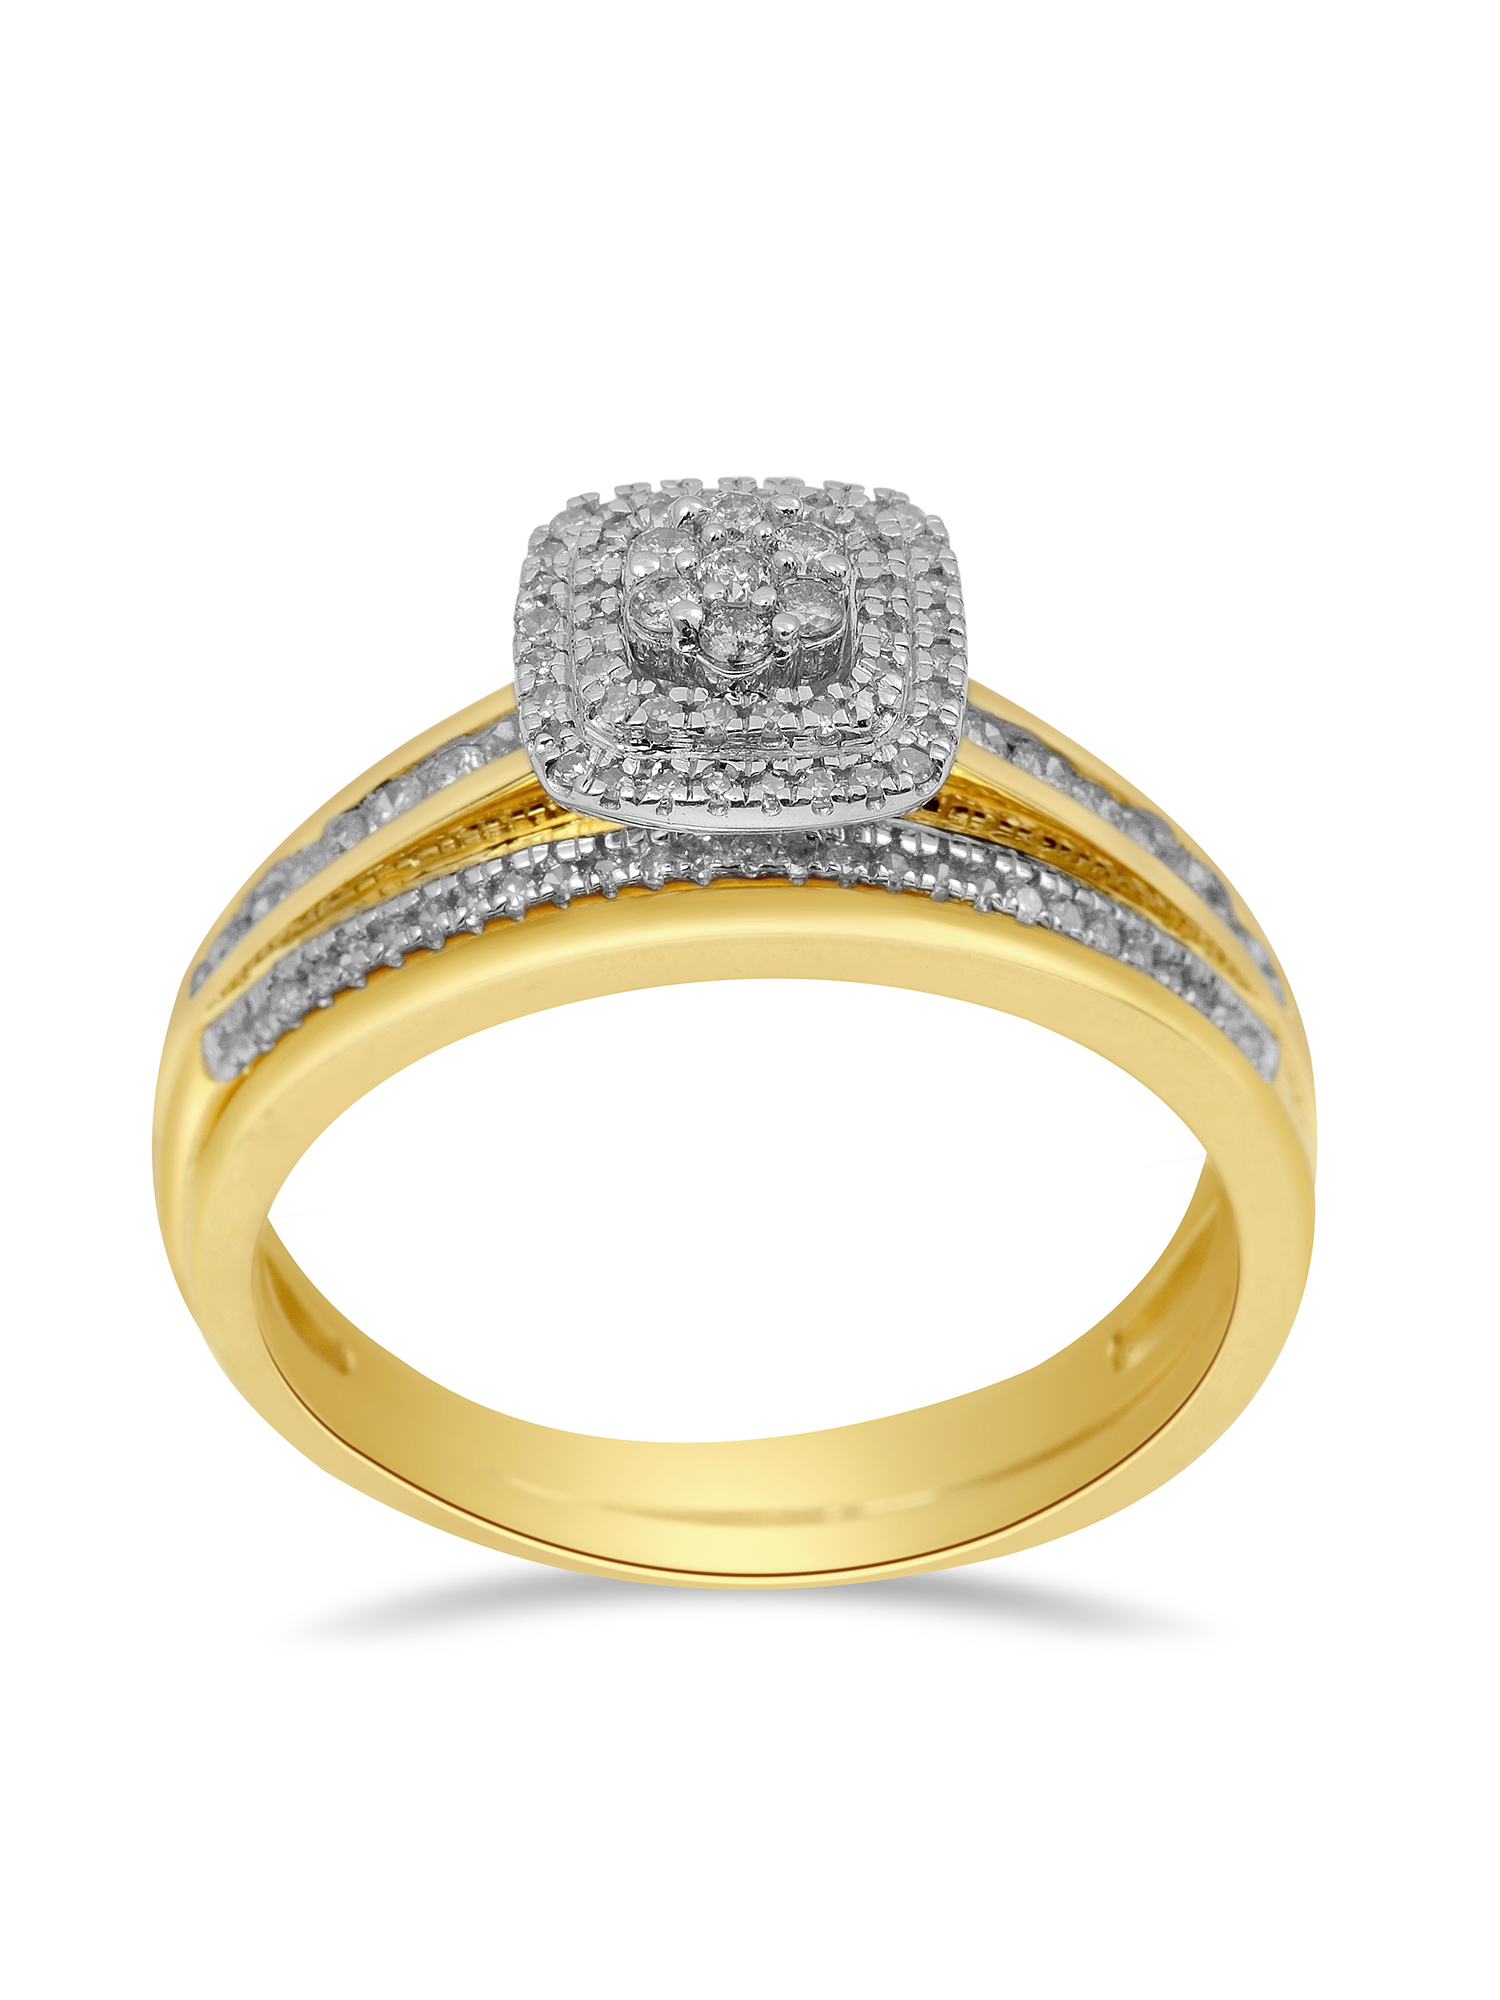 1/2ct. T.W. Diamond 10kt Yellow Gold Bridal Set